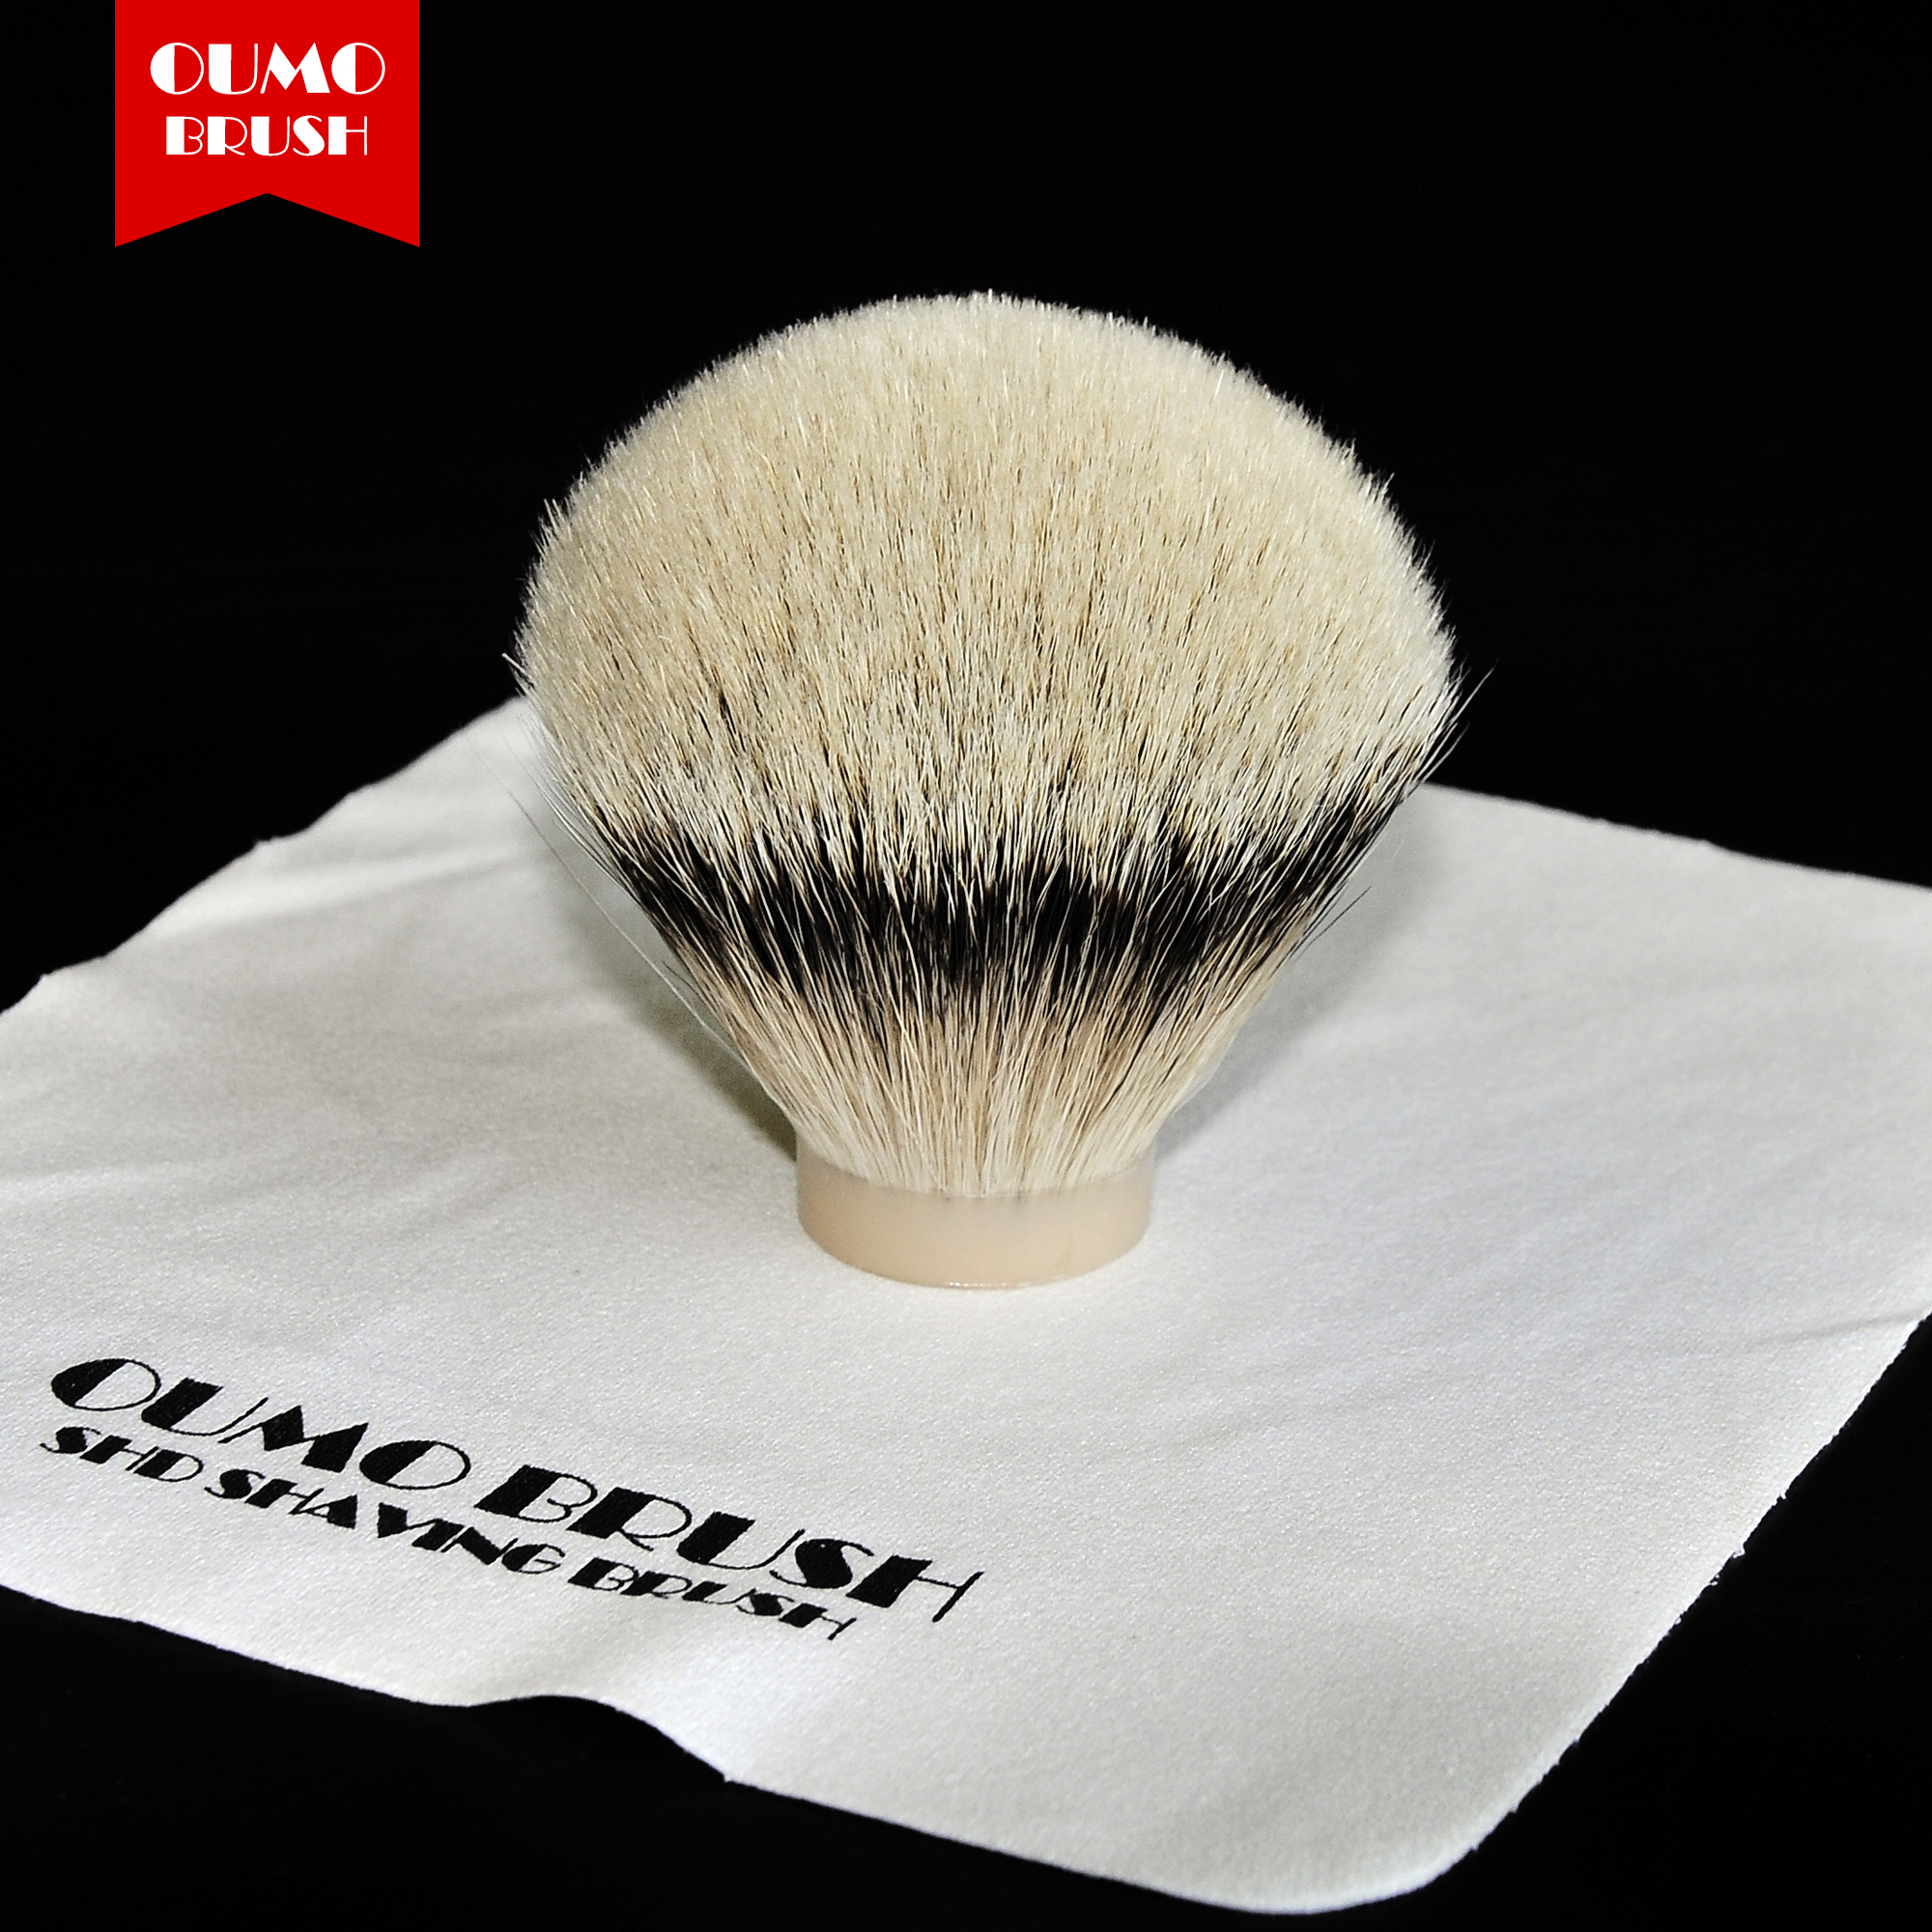 OUMOBRUSH-SHD SILK HMW Slivertip Shaving Brush Knots Gel Tip